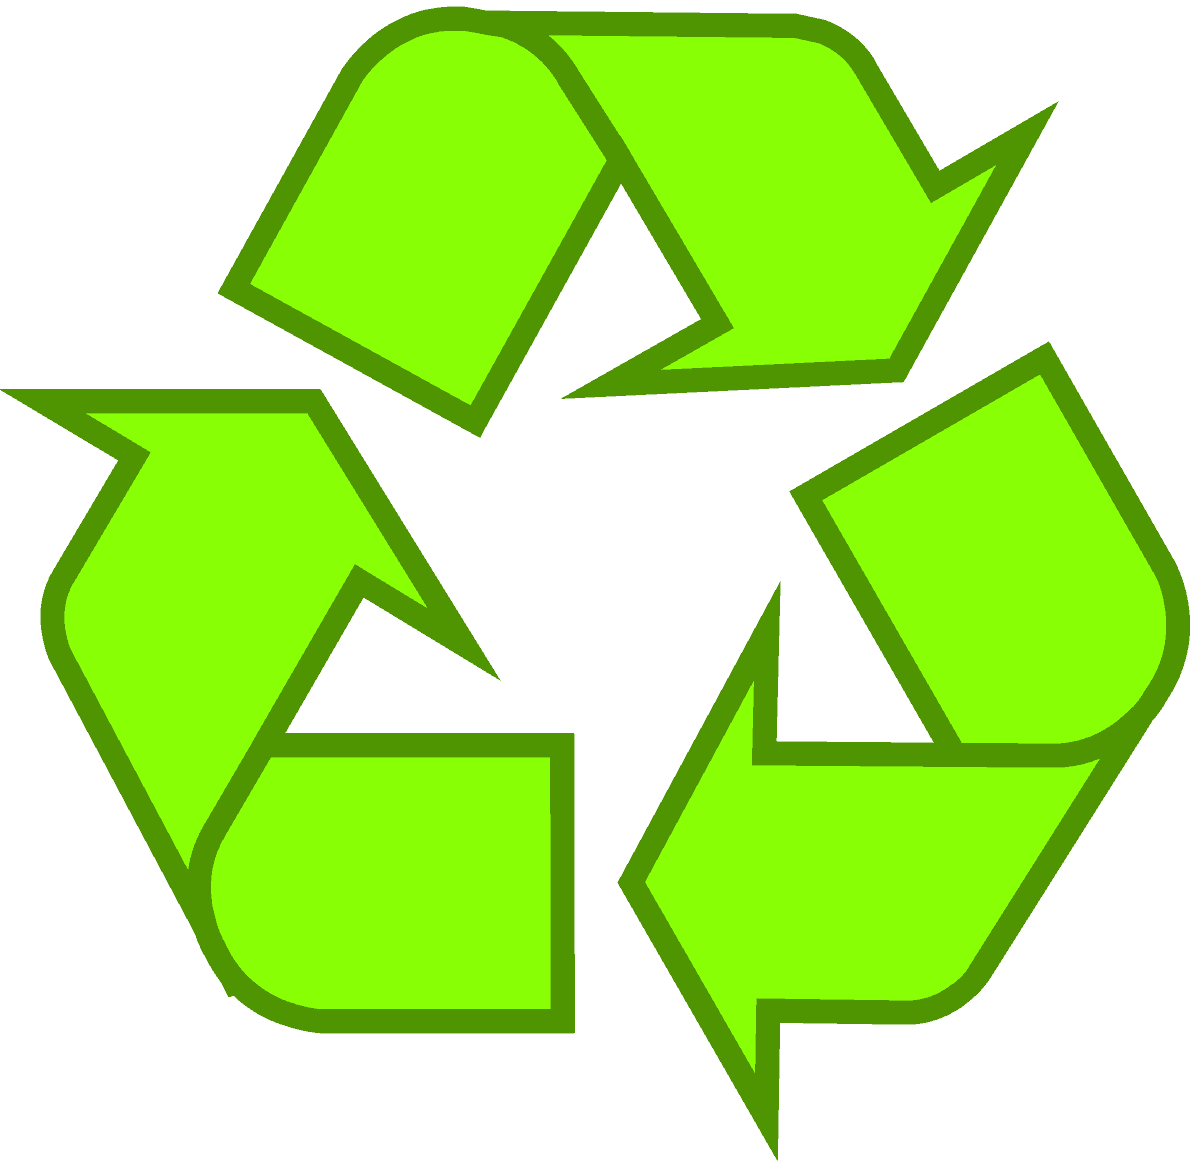 recycling-symbol-icon-outline-solid-light-green